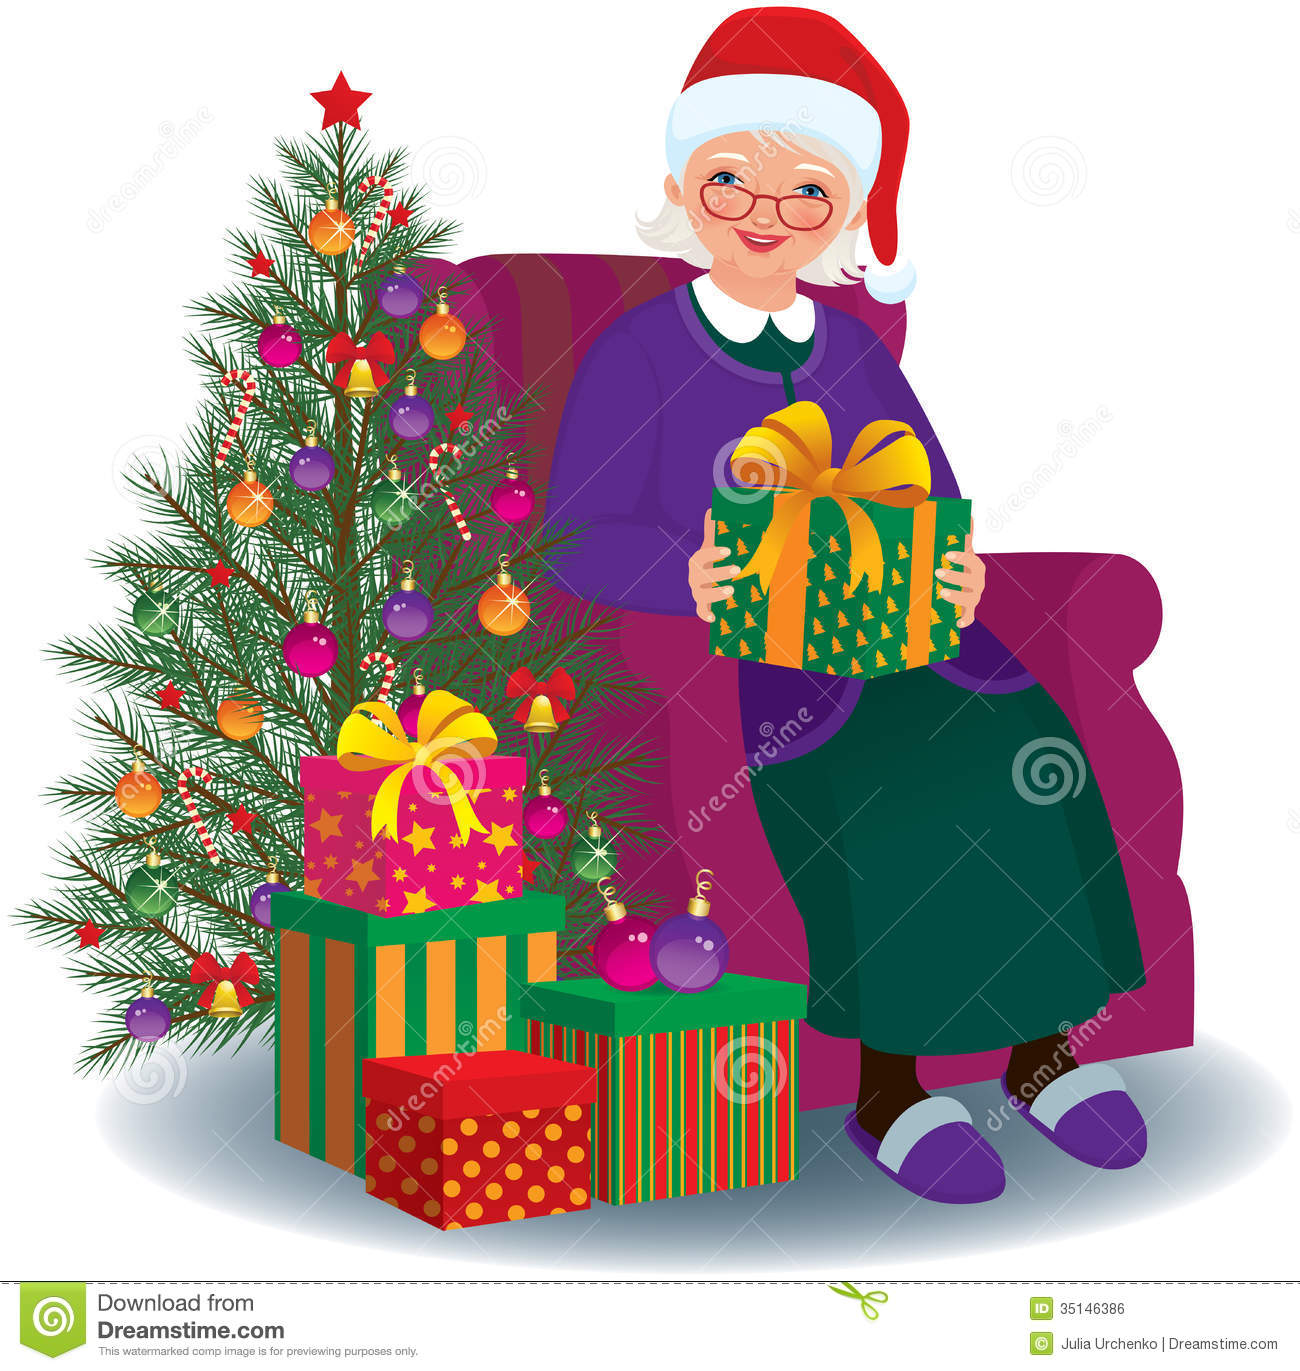 Old People Christmas Gifts: Christmas Gift For The Beloved Granny Royalty Free Stock